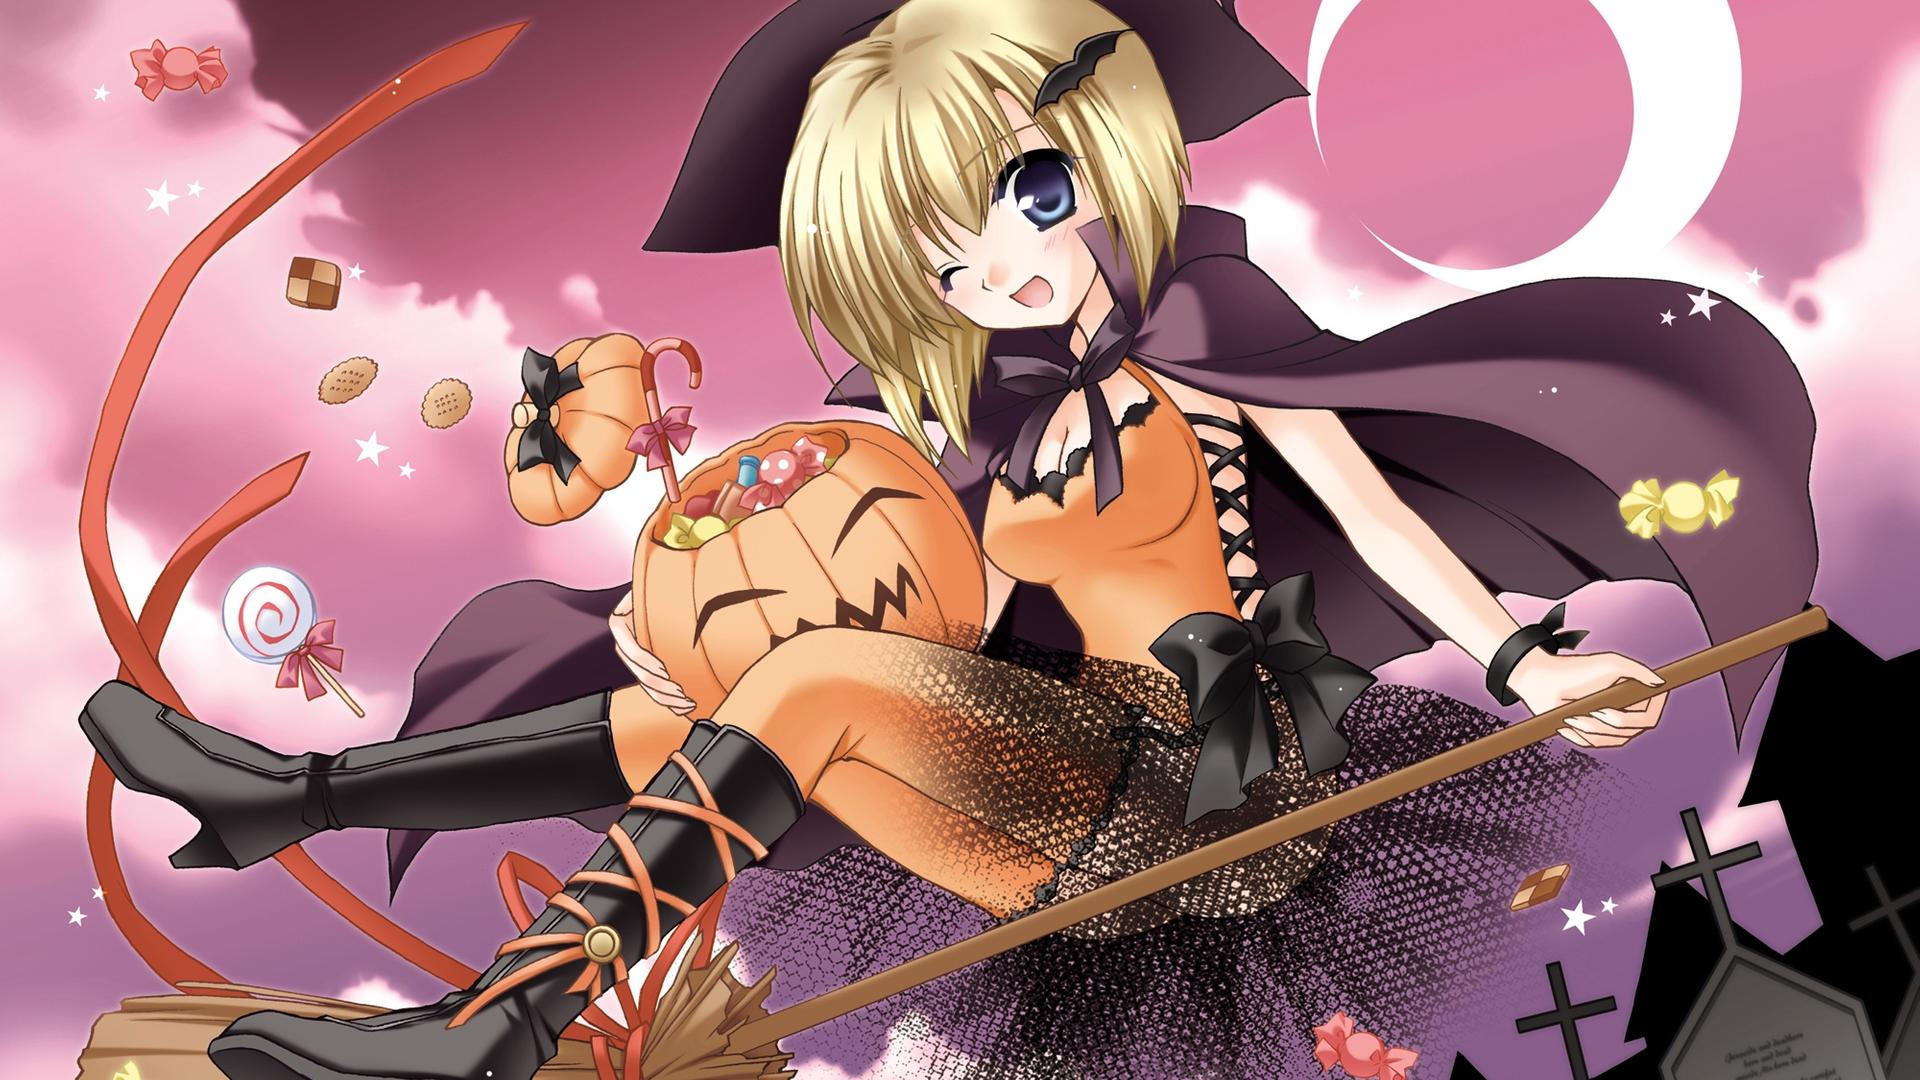 A girl witch on a broom - Halloween anime wallpaper ...